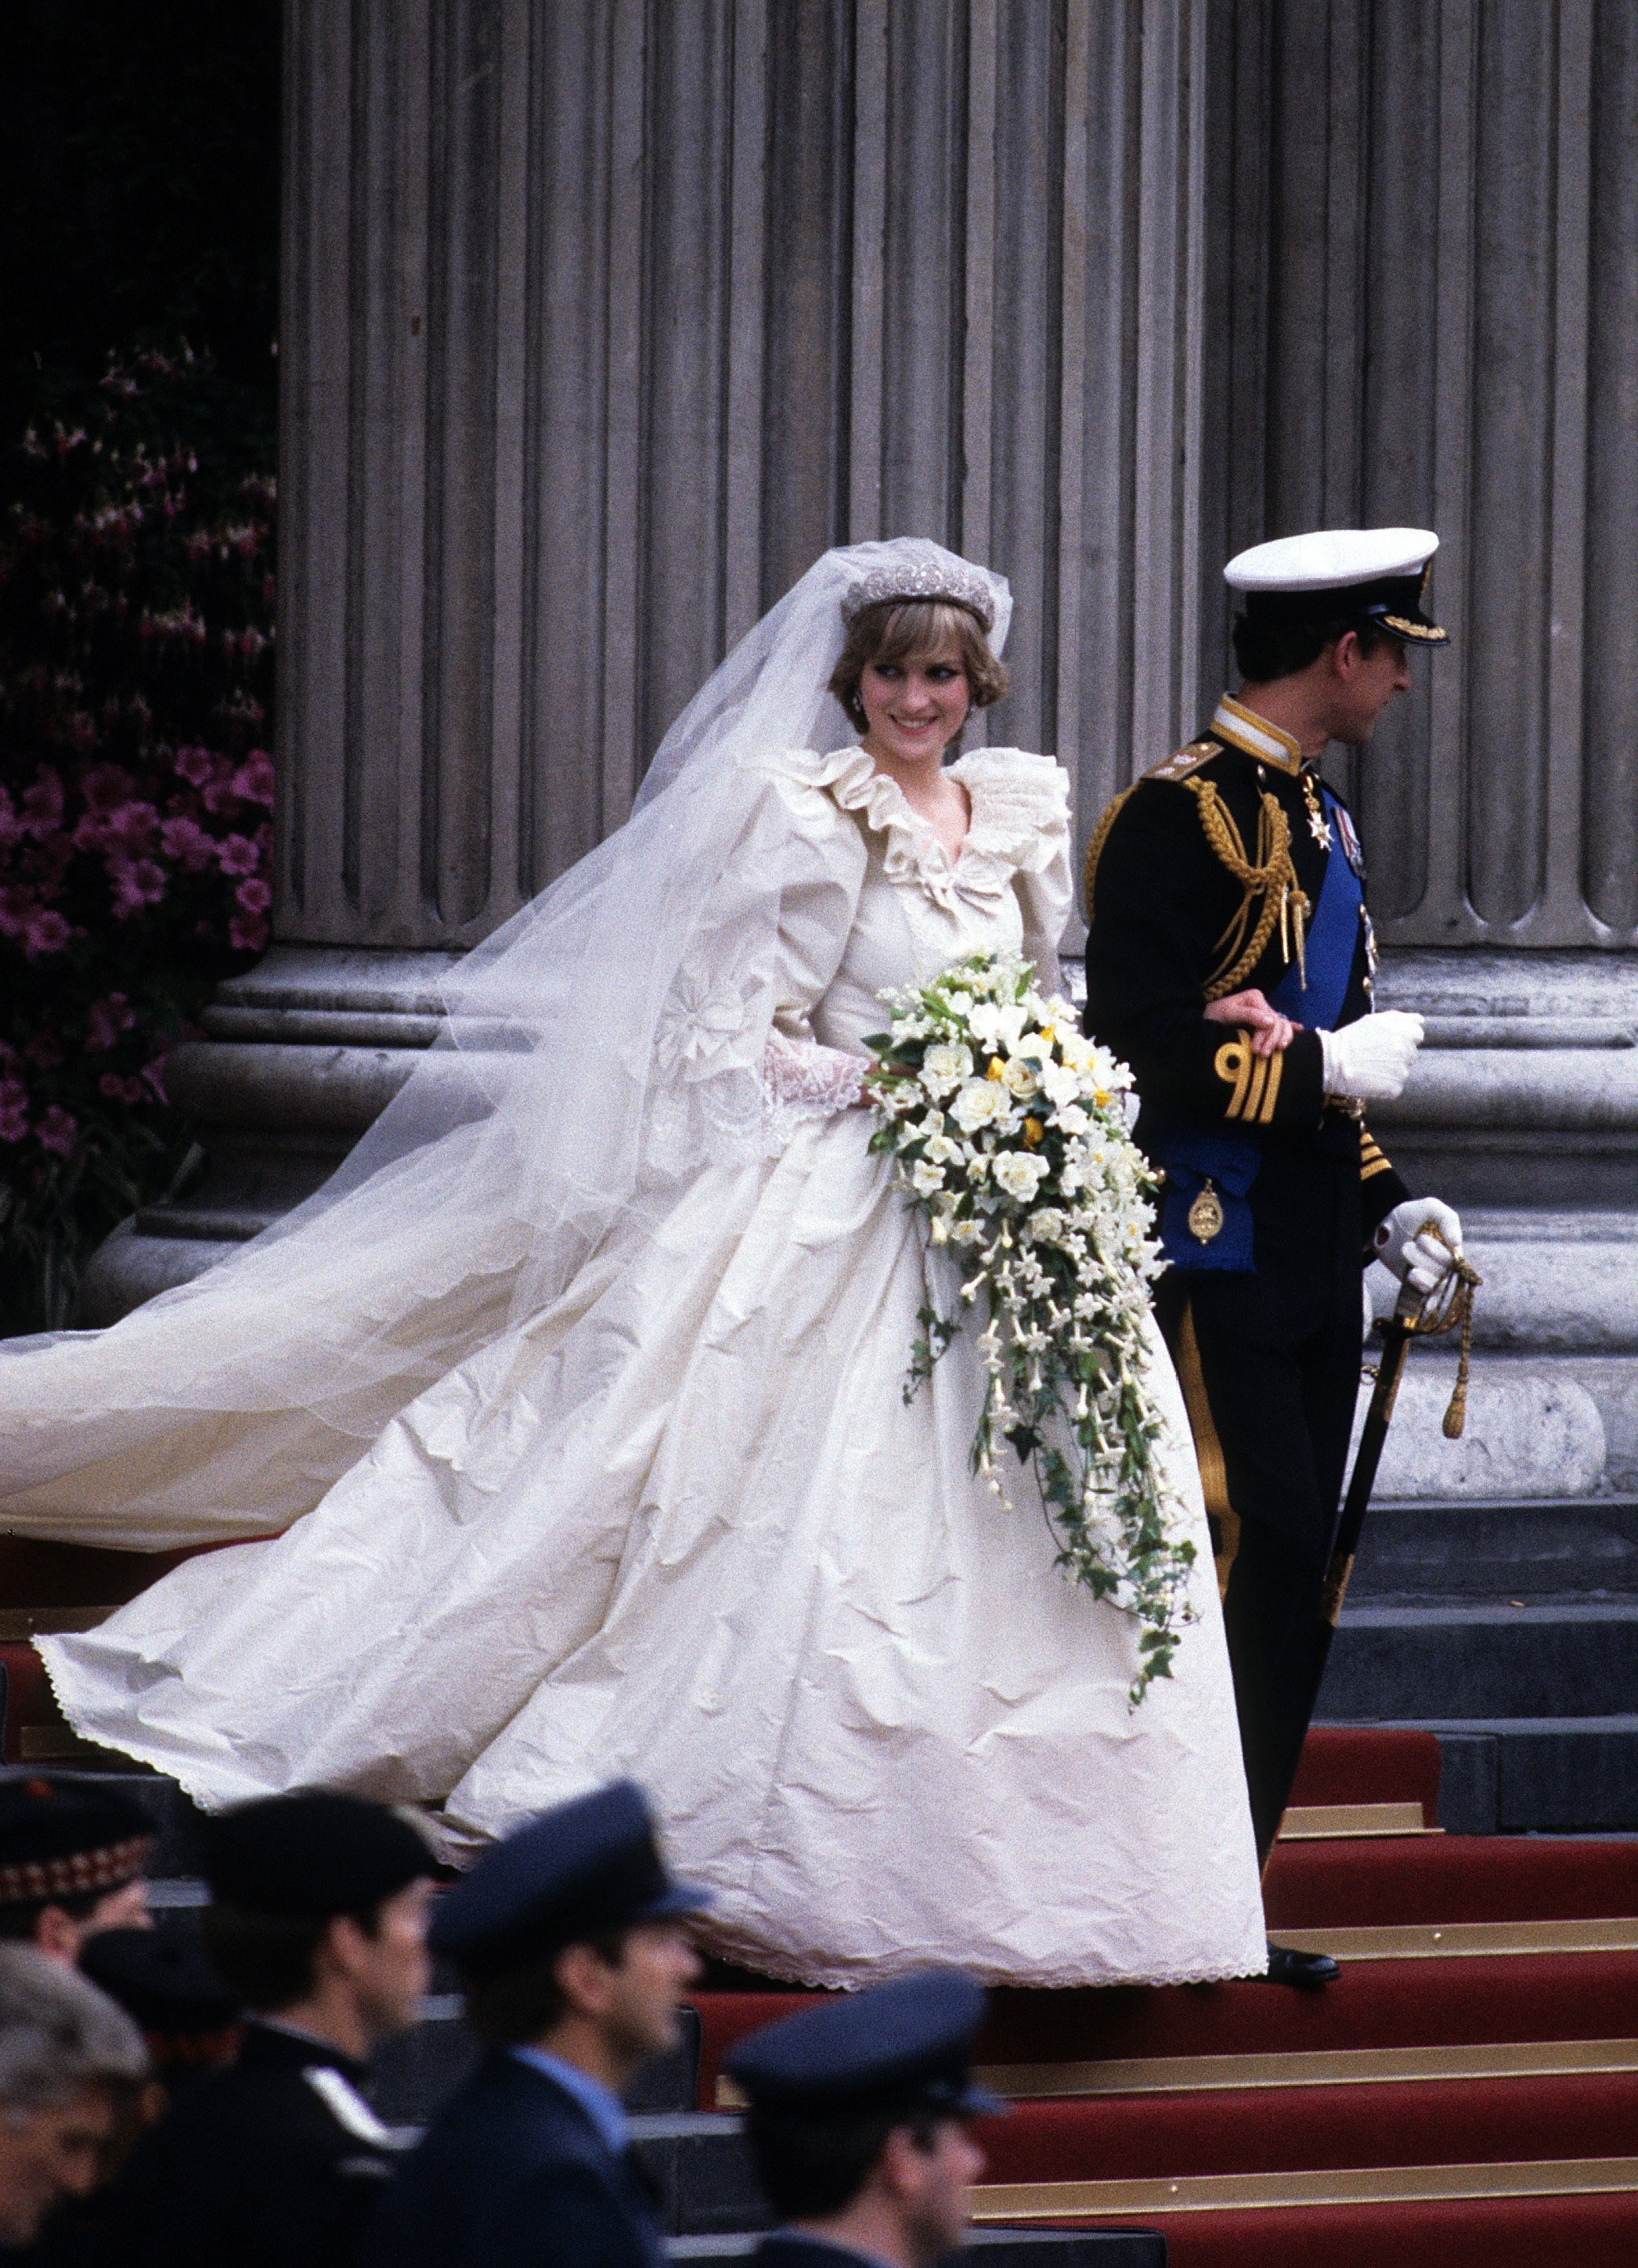 Prince Charles and late Princess Diana leave St. Paul's cathedral following their wedding July 29, 1981. | Source: Getty Images